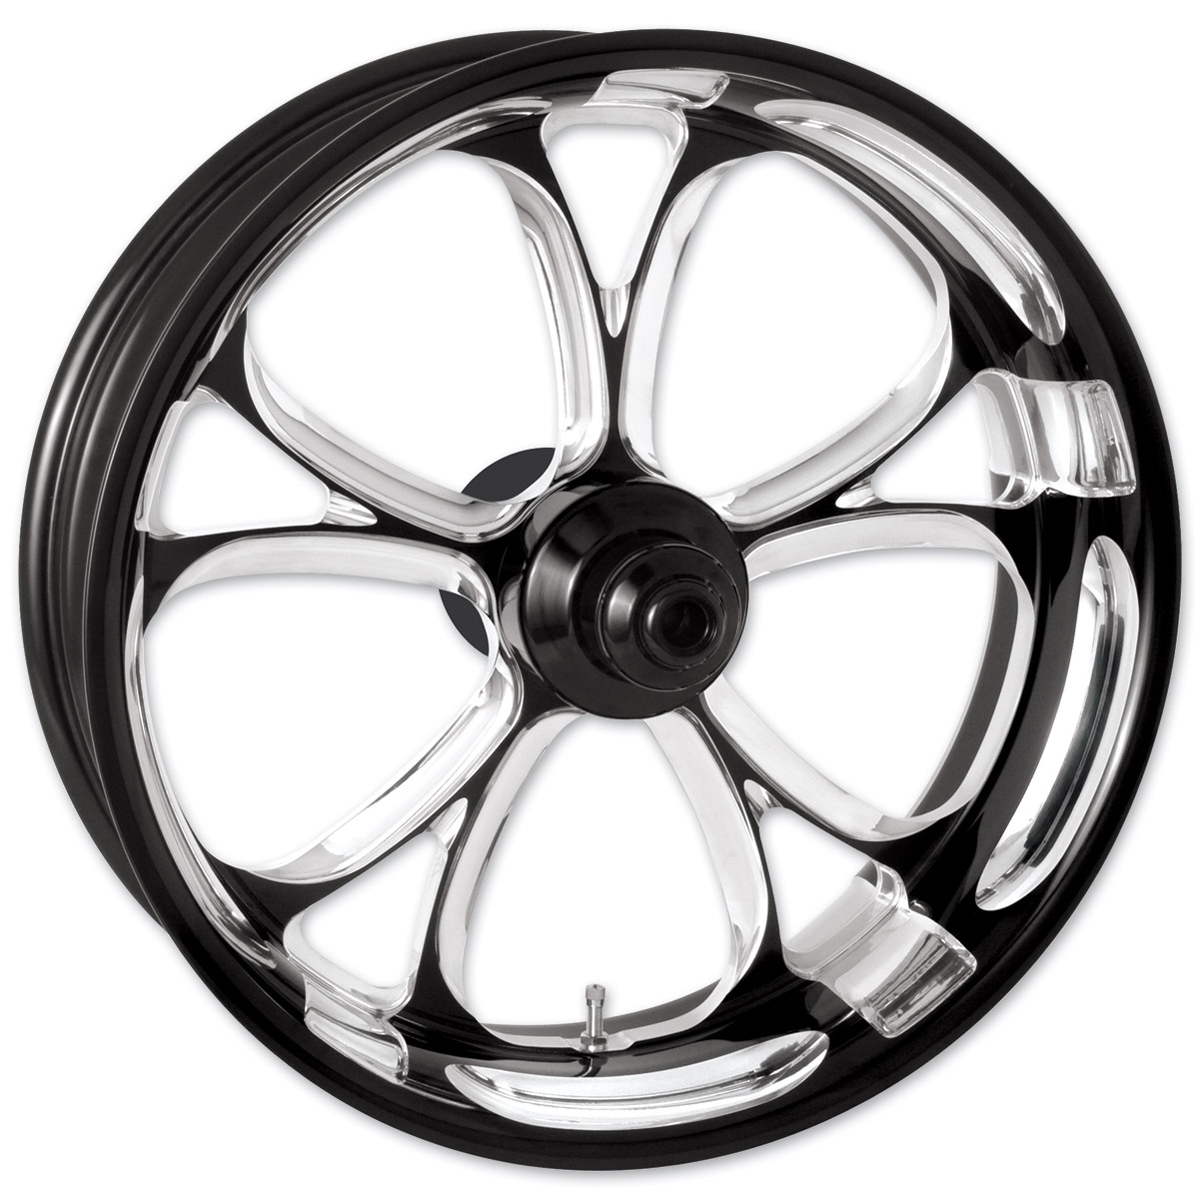 Performance Machine Luxe Platinum Cut Front Wheel 21x2.15 With PM Disc